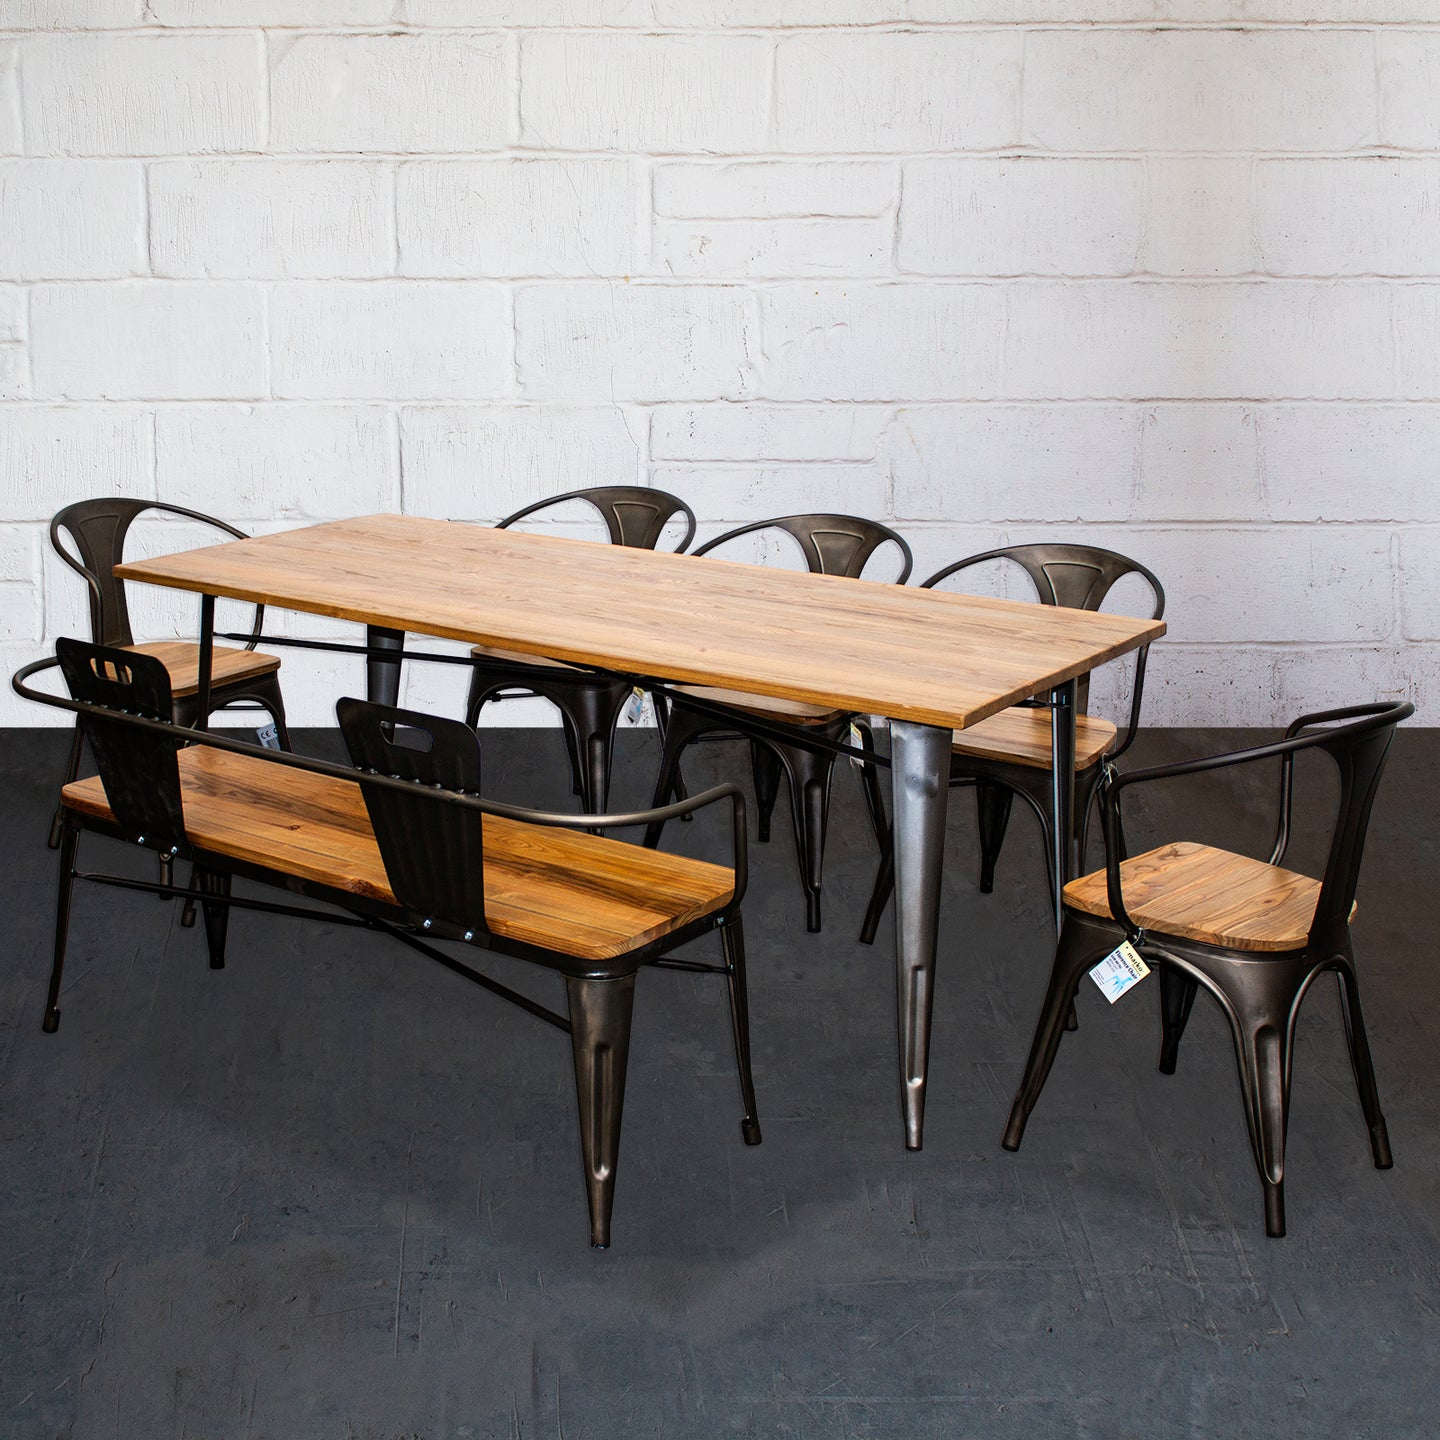 7PC Taranto Table, 5 Florence Chairs & Nuoro Bench Set - Gun Metal Grey